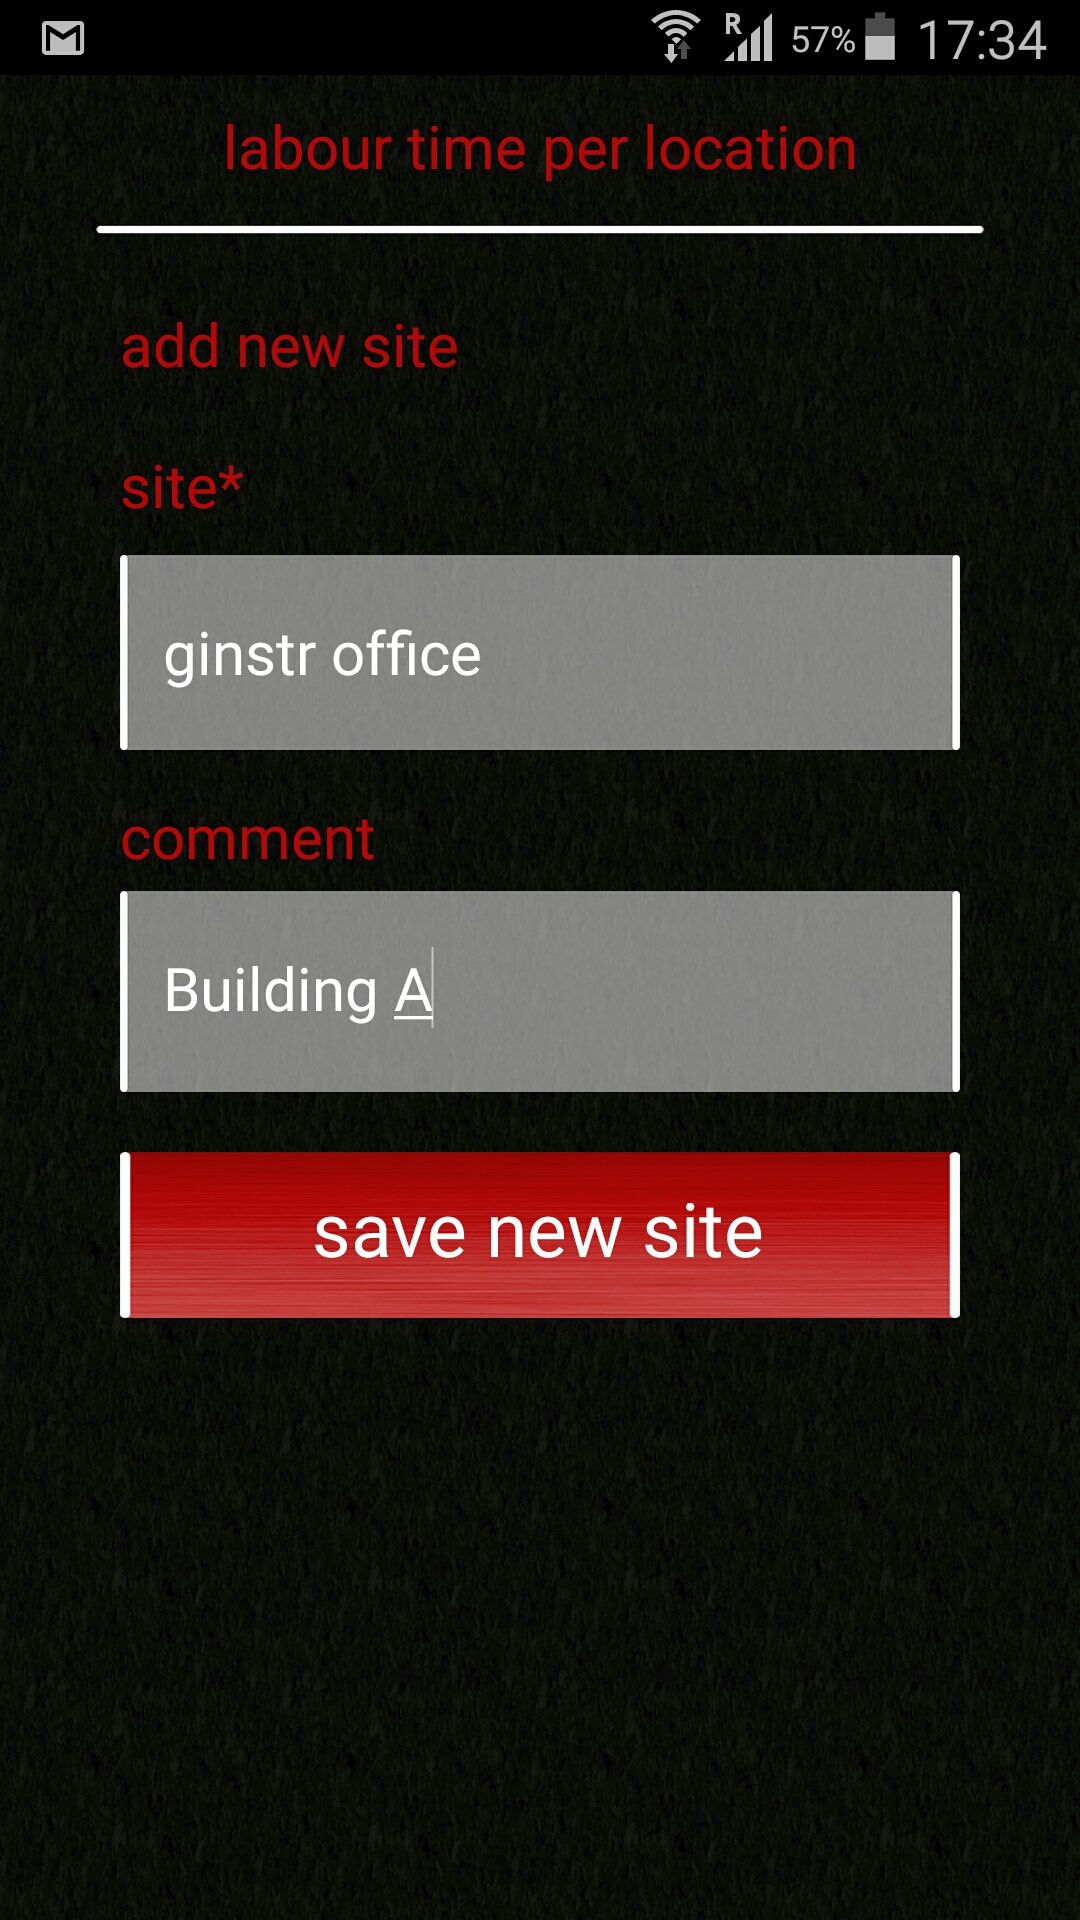 ginstr_app-labourTimePerLocation_EN_7